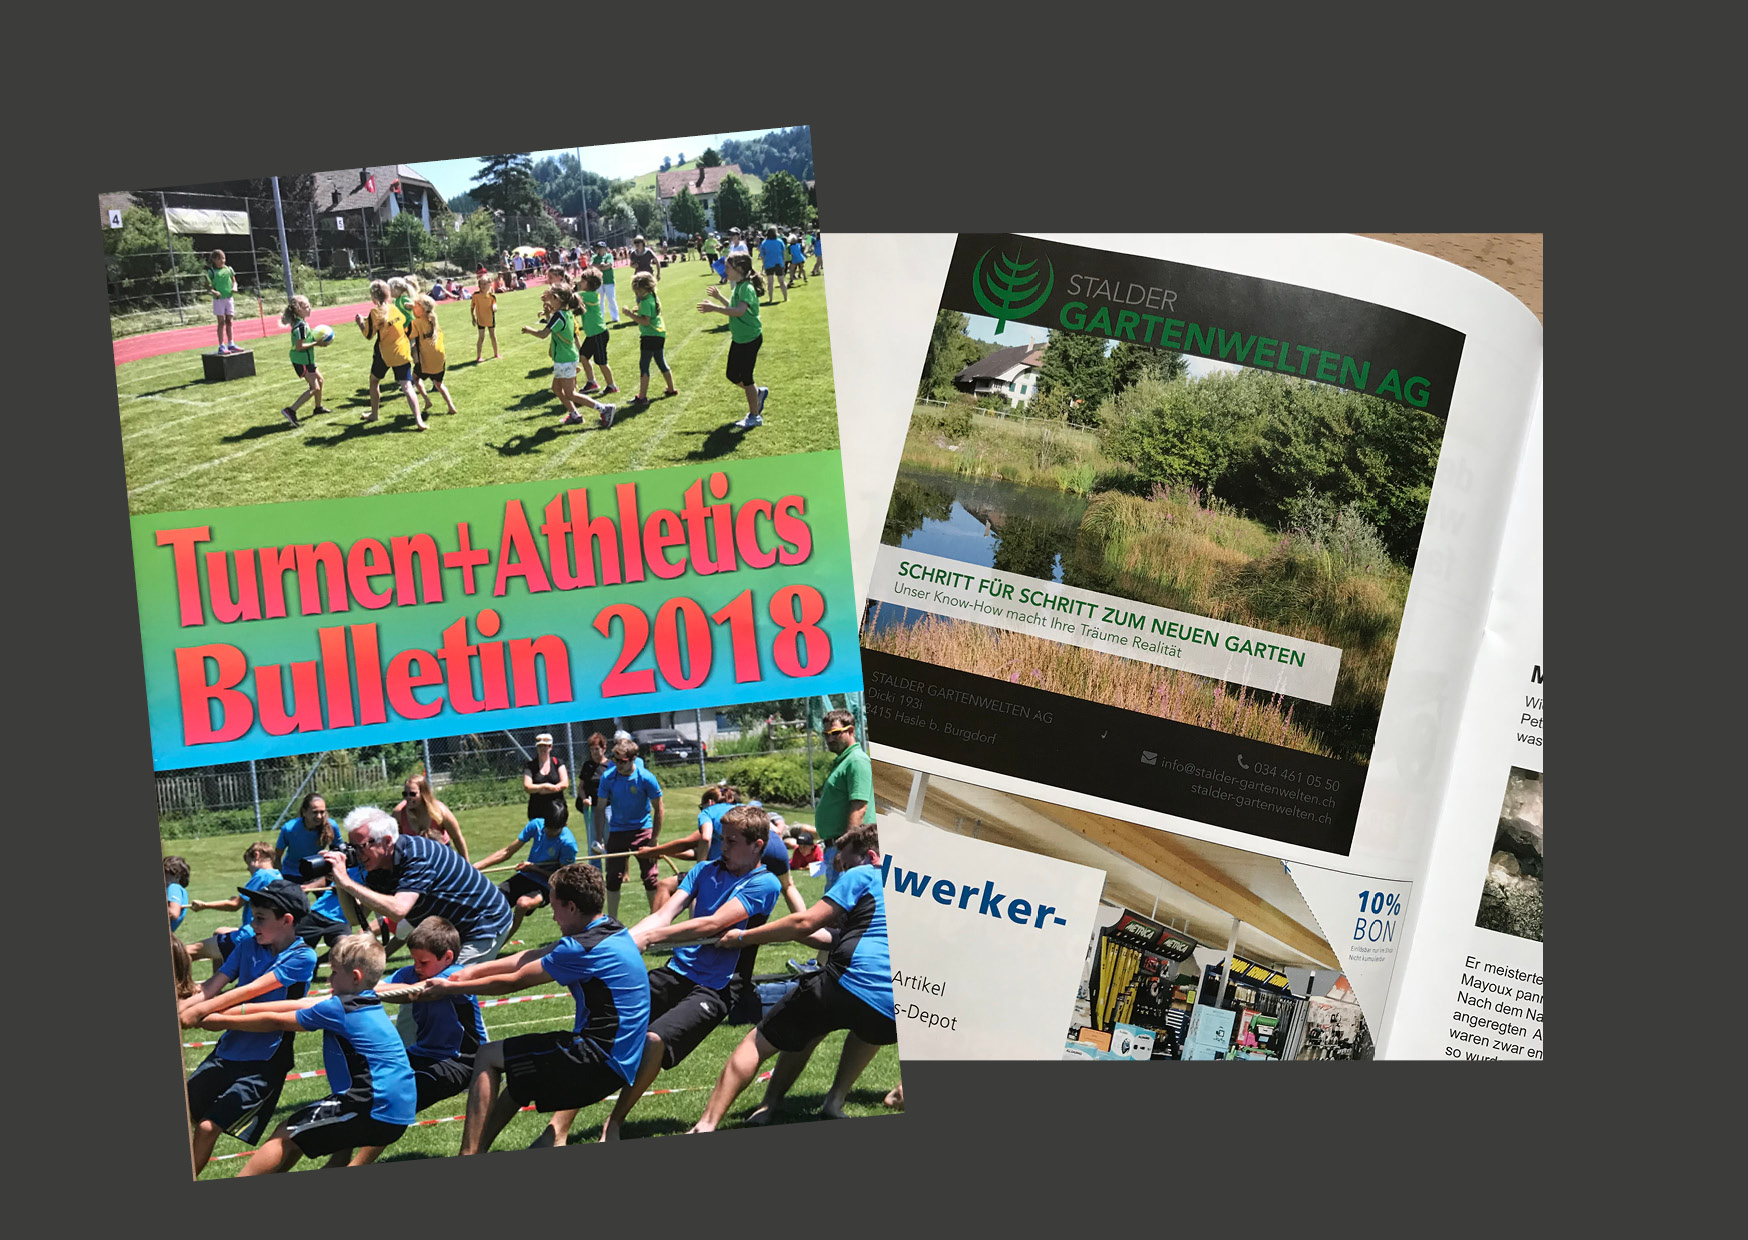 Inserat im Turnen + Athletics Bulletin 2018